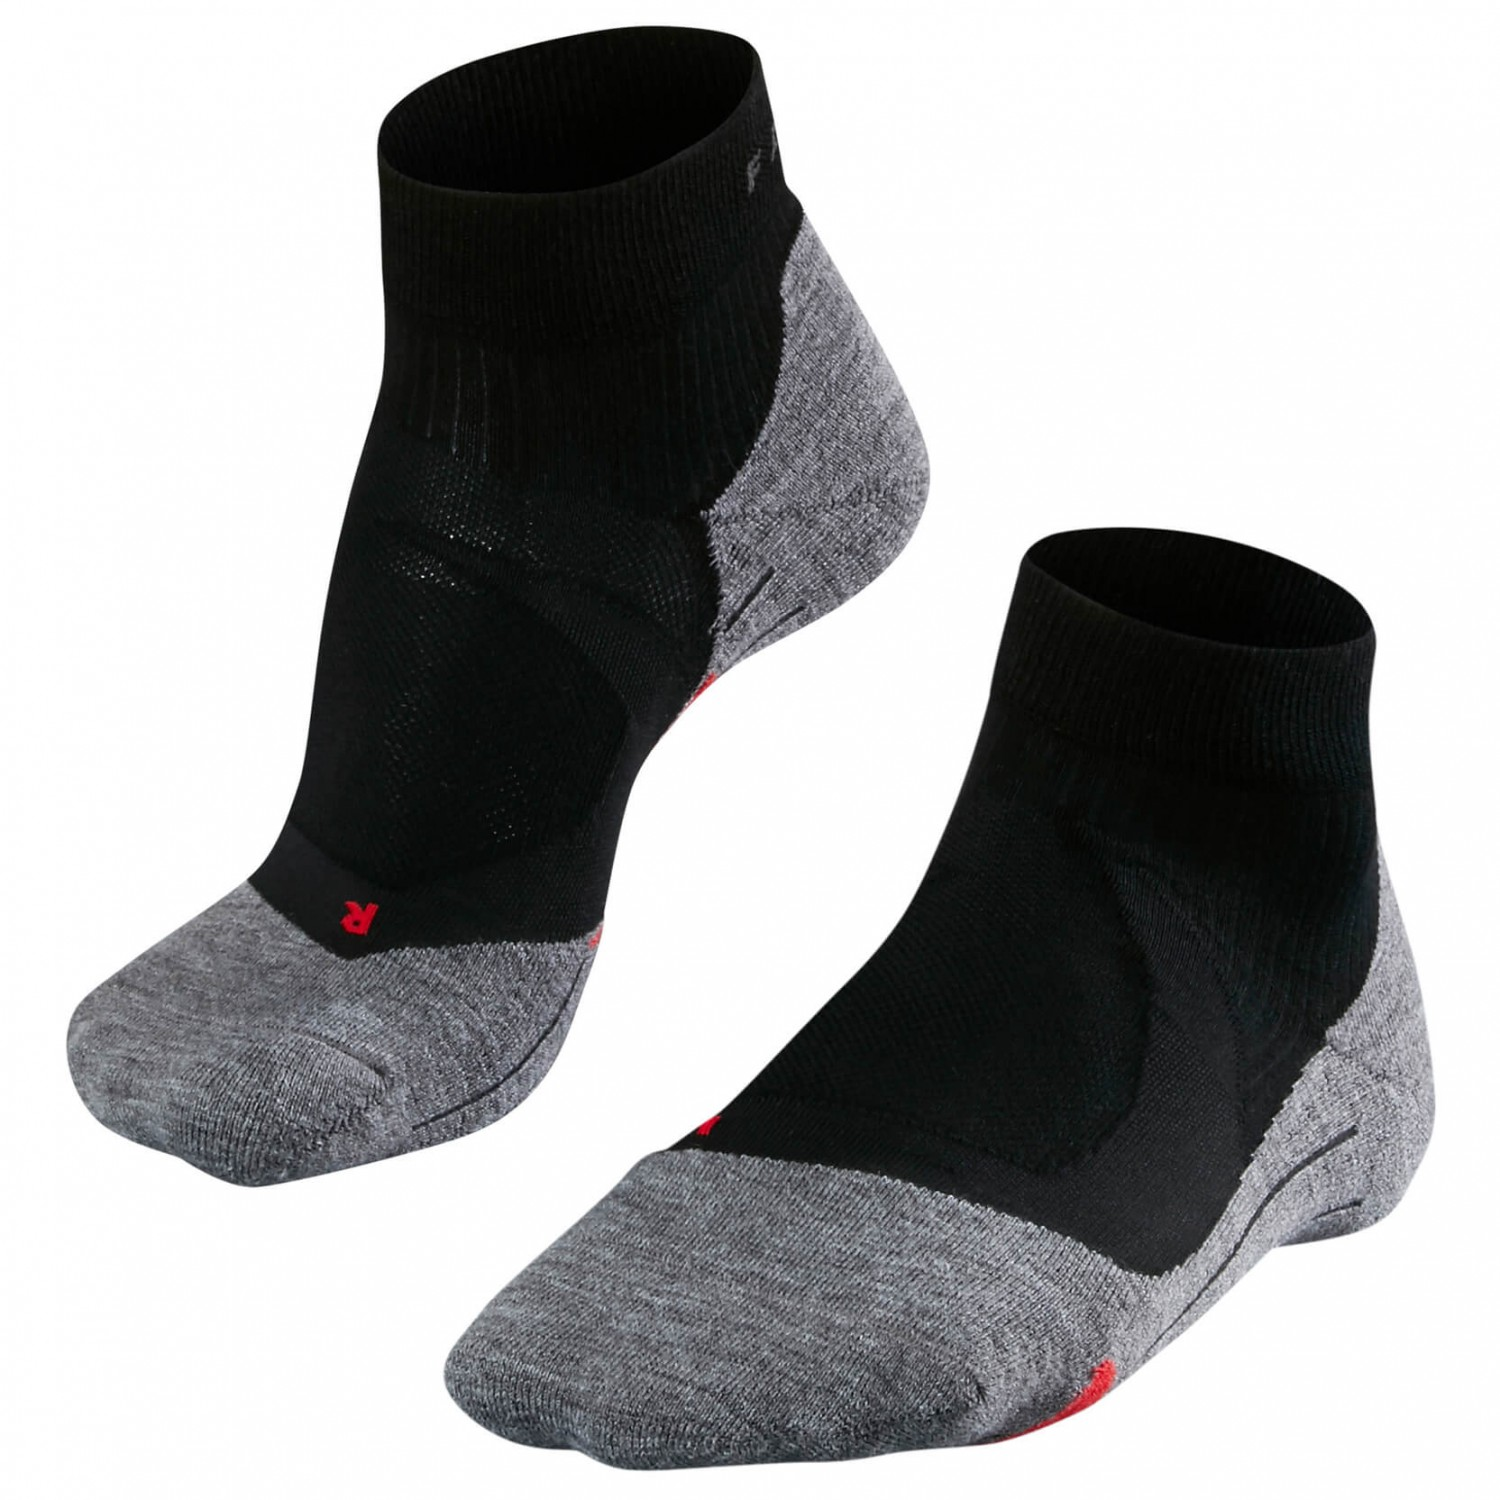 Falke - Falke RU4 Cushion Short - Laufsocken Black / Mix